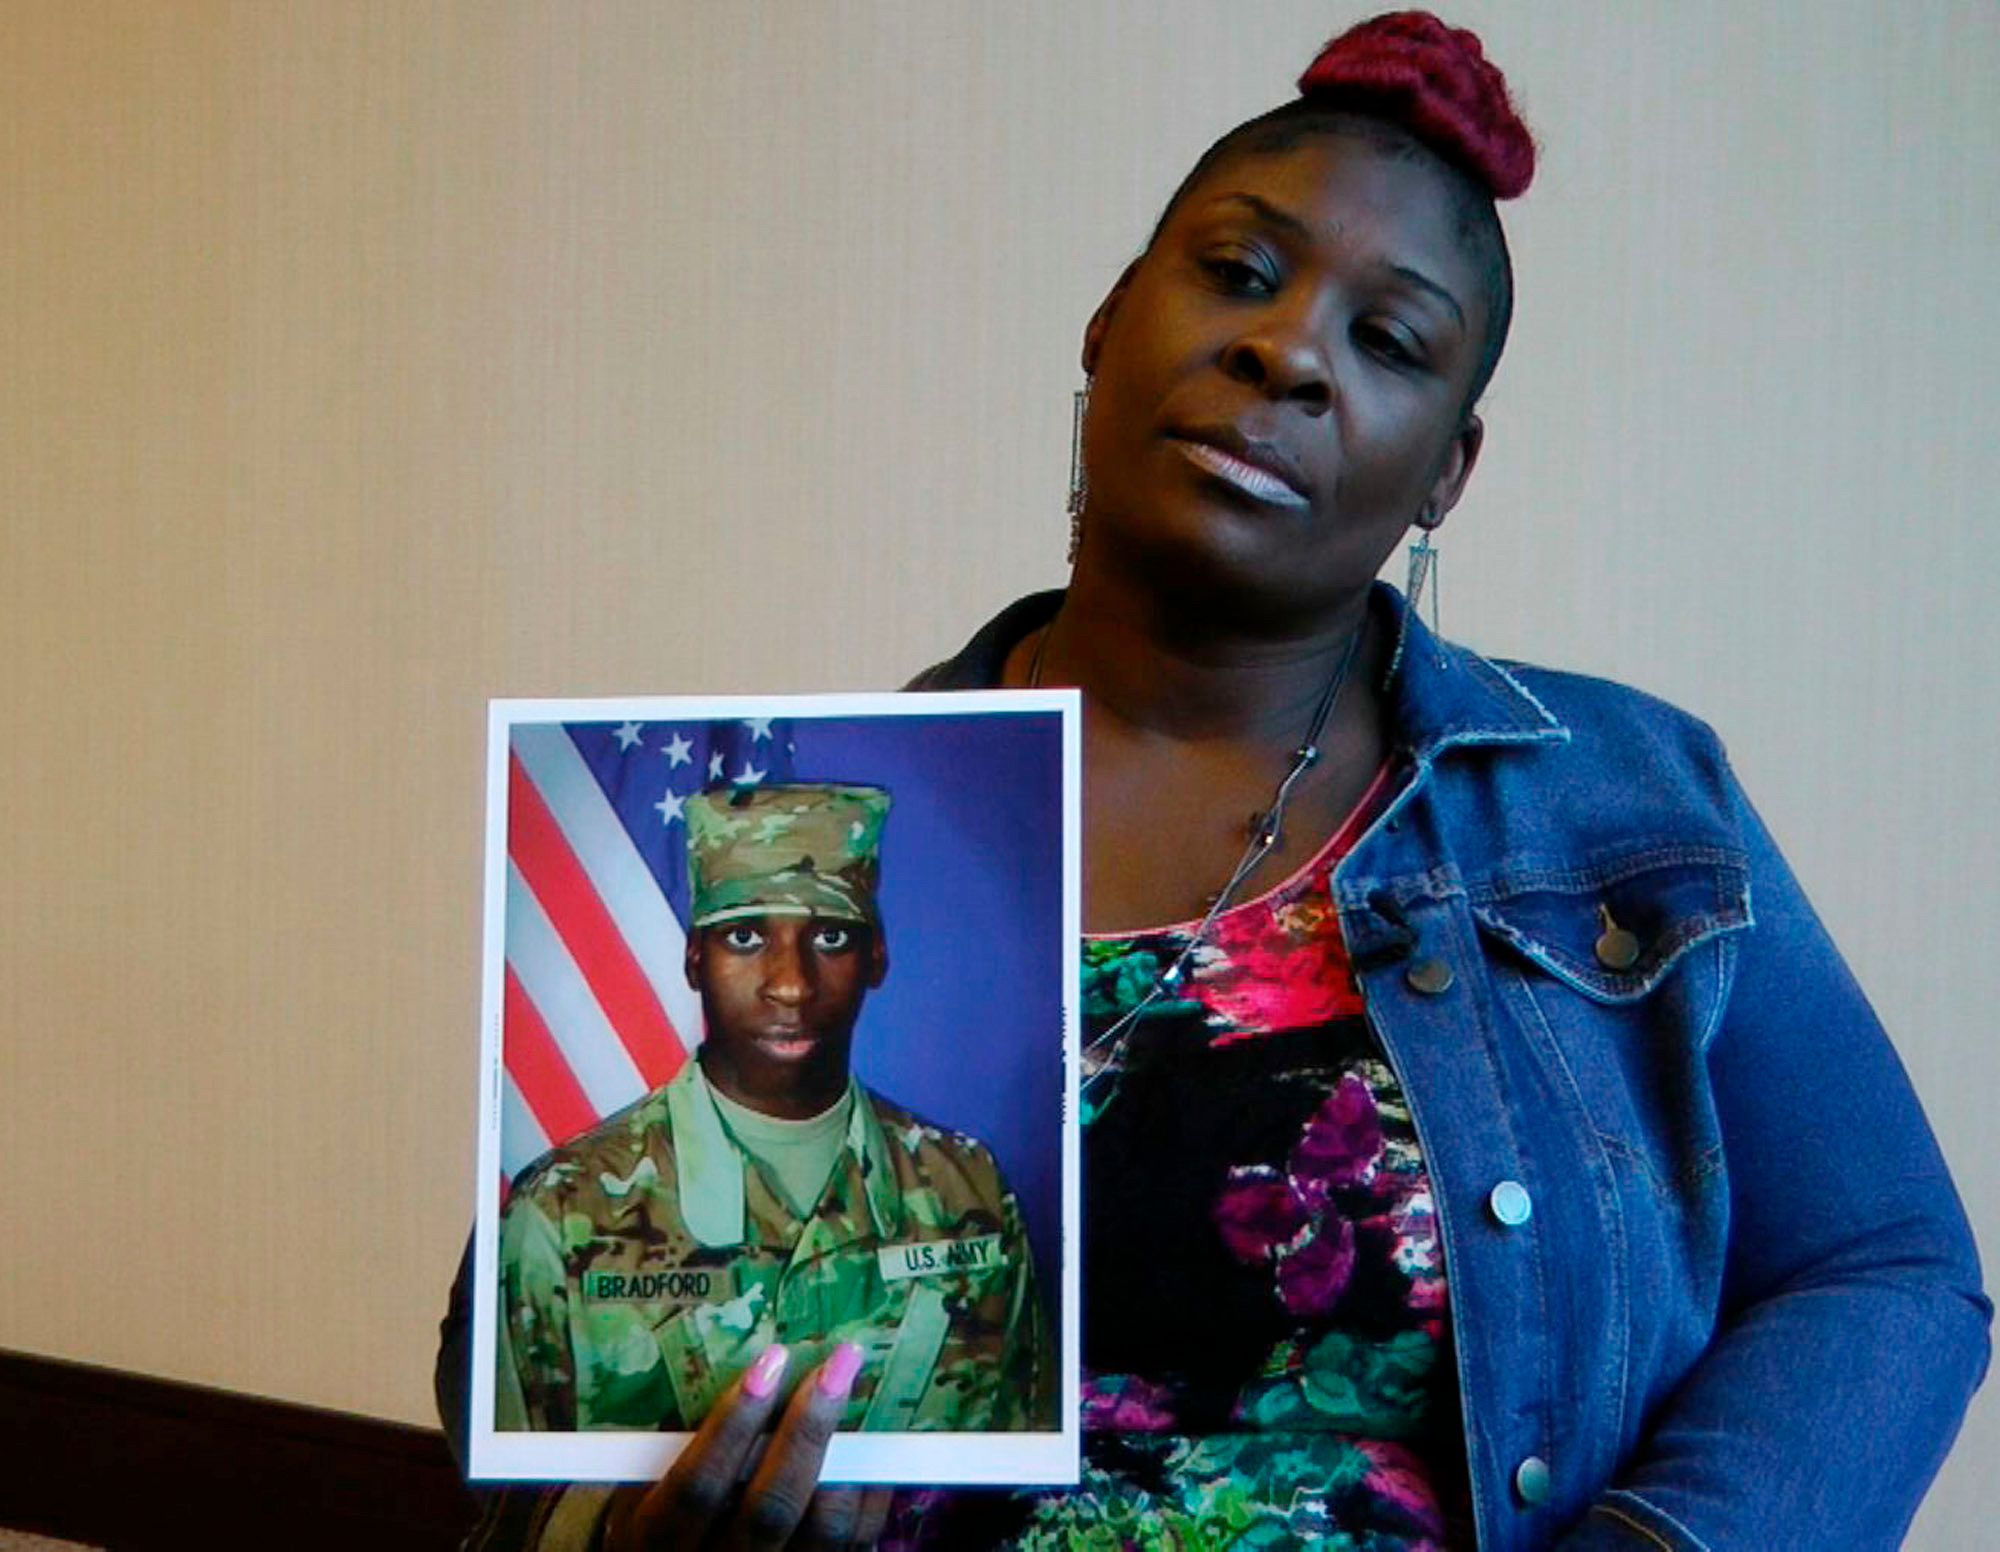 """April Pipkins holds a photograph of her deceased son, Emantic """"EJ"""" Bradford Jr., who was fatally shot by police after being m"""